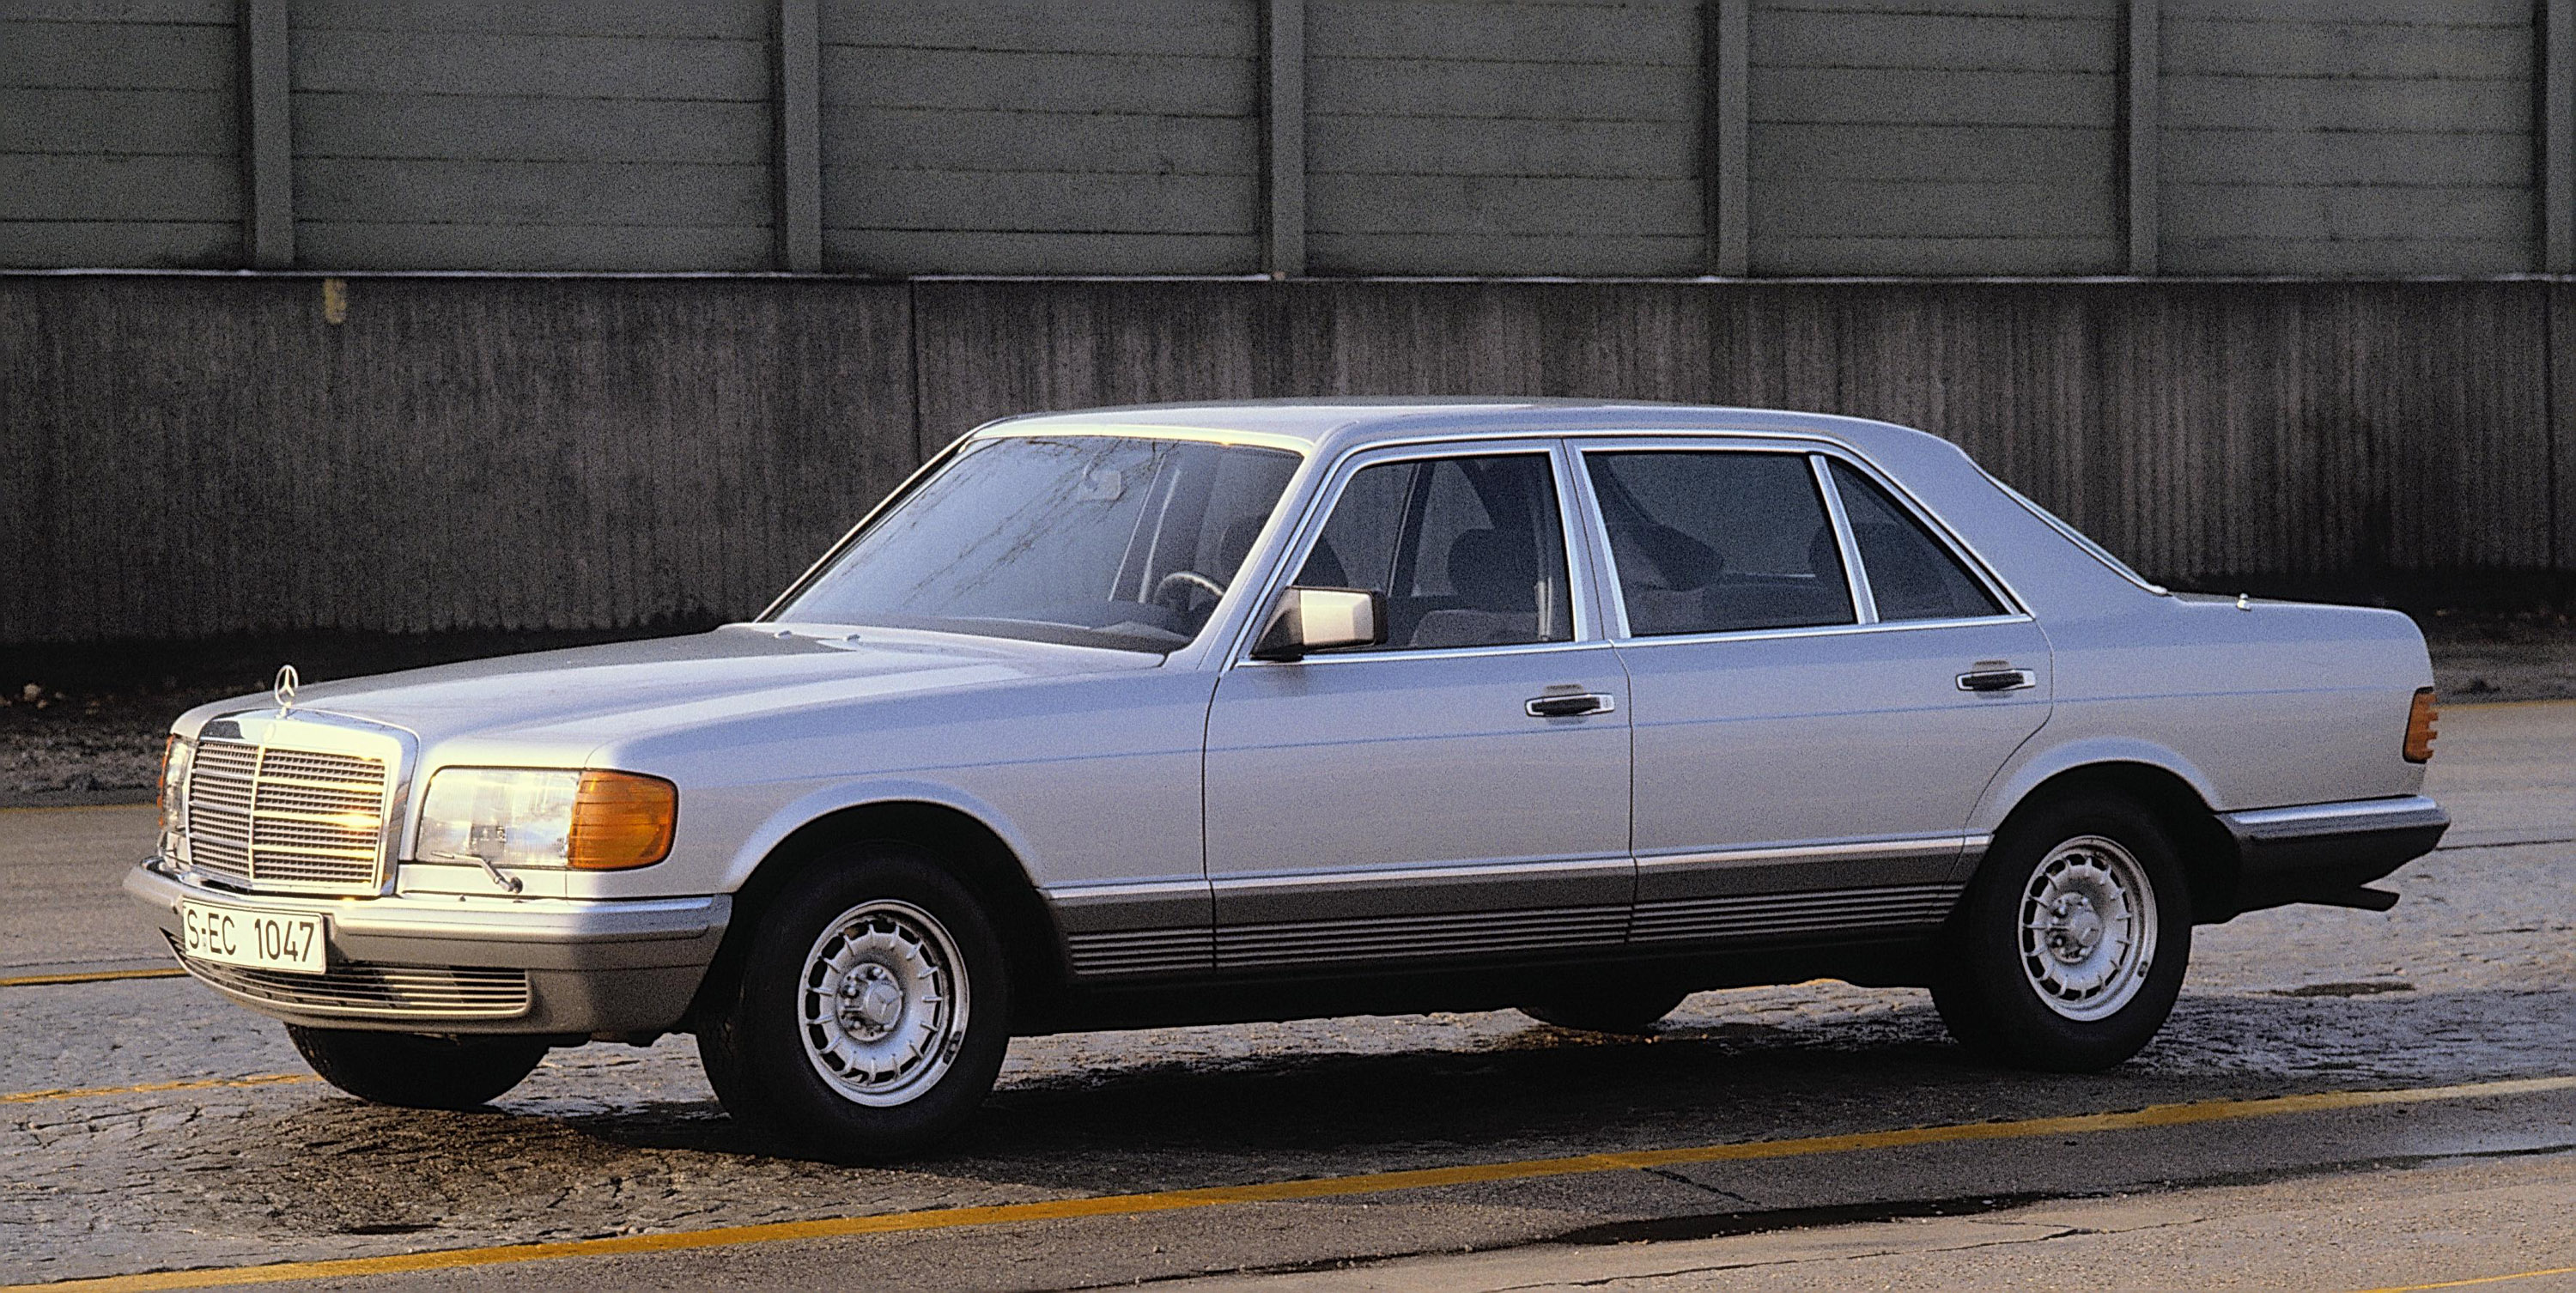 The w126 sel longbody history picture thread page 5 for Mercedes benz history